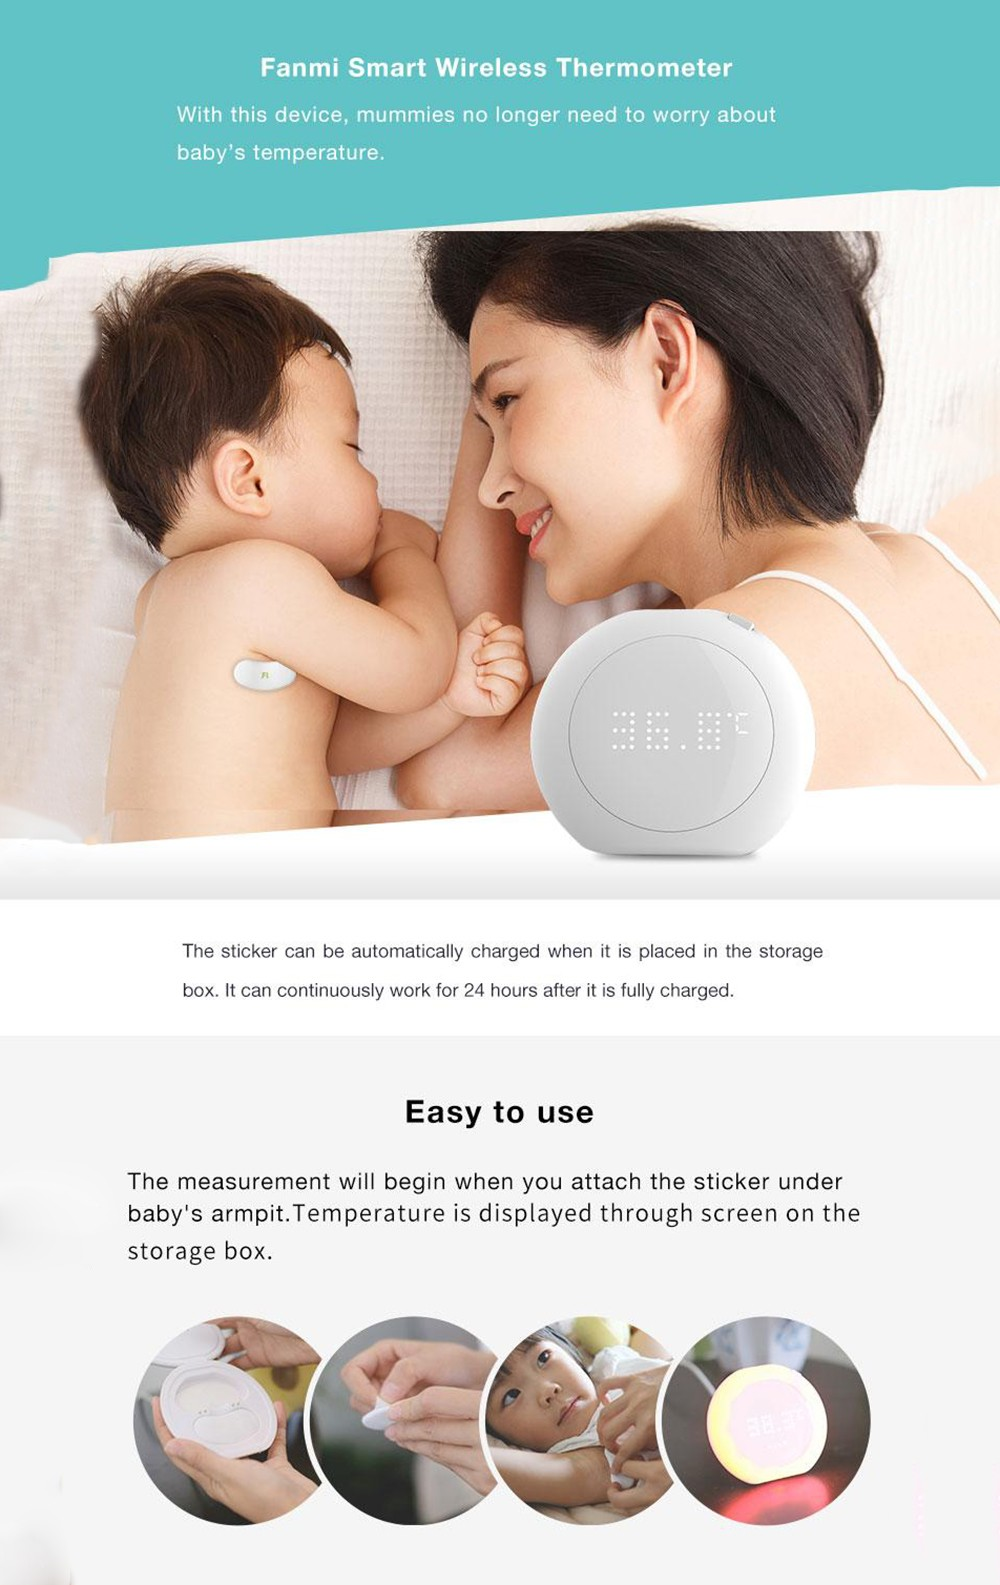 Fanmi FL - BFM001 24 Hour Intelligent Baby Fever Monitor with Wireless Alerts Wearable Smart Thermometer Digital Accurate Reading for Infant Toddlers- Warm White